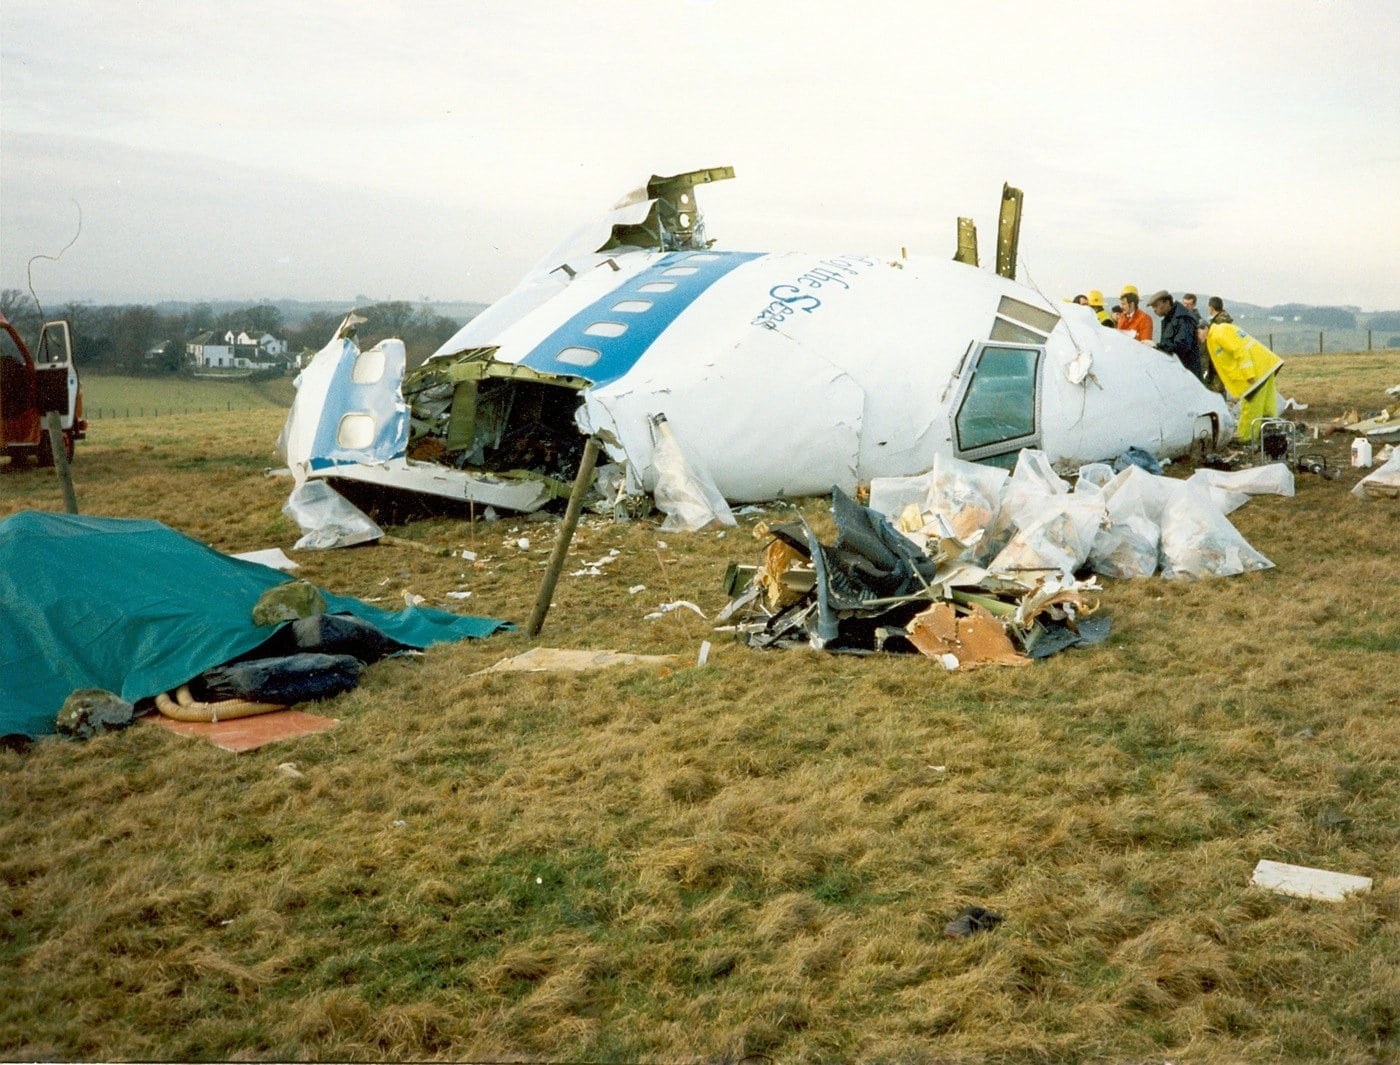 Pan Am Flight 103 nose in a field after bombing and crash (1988) - FBI photo